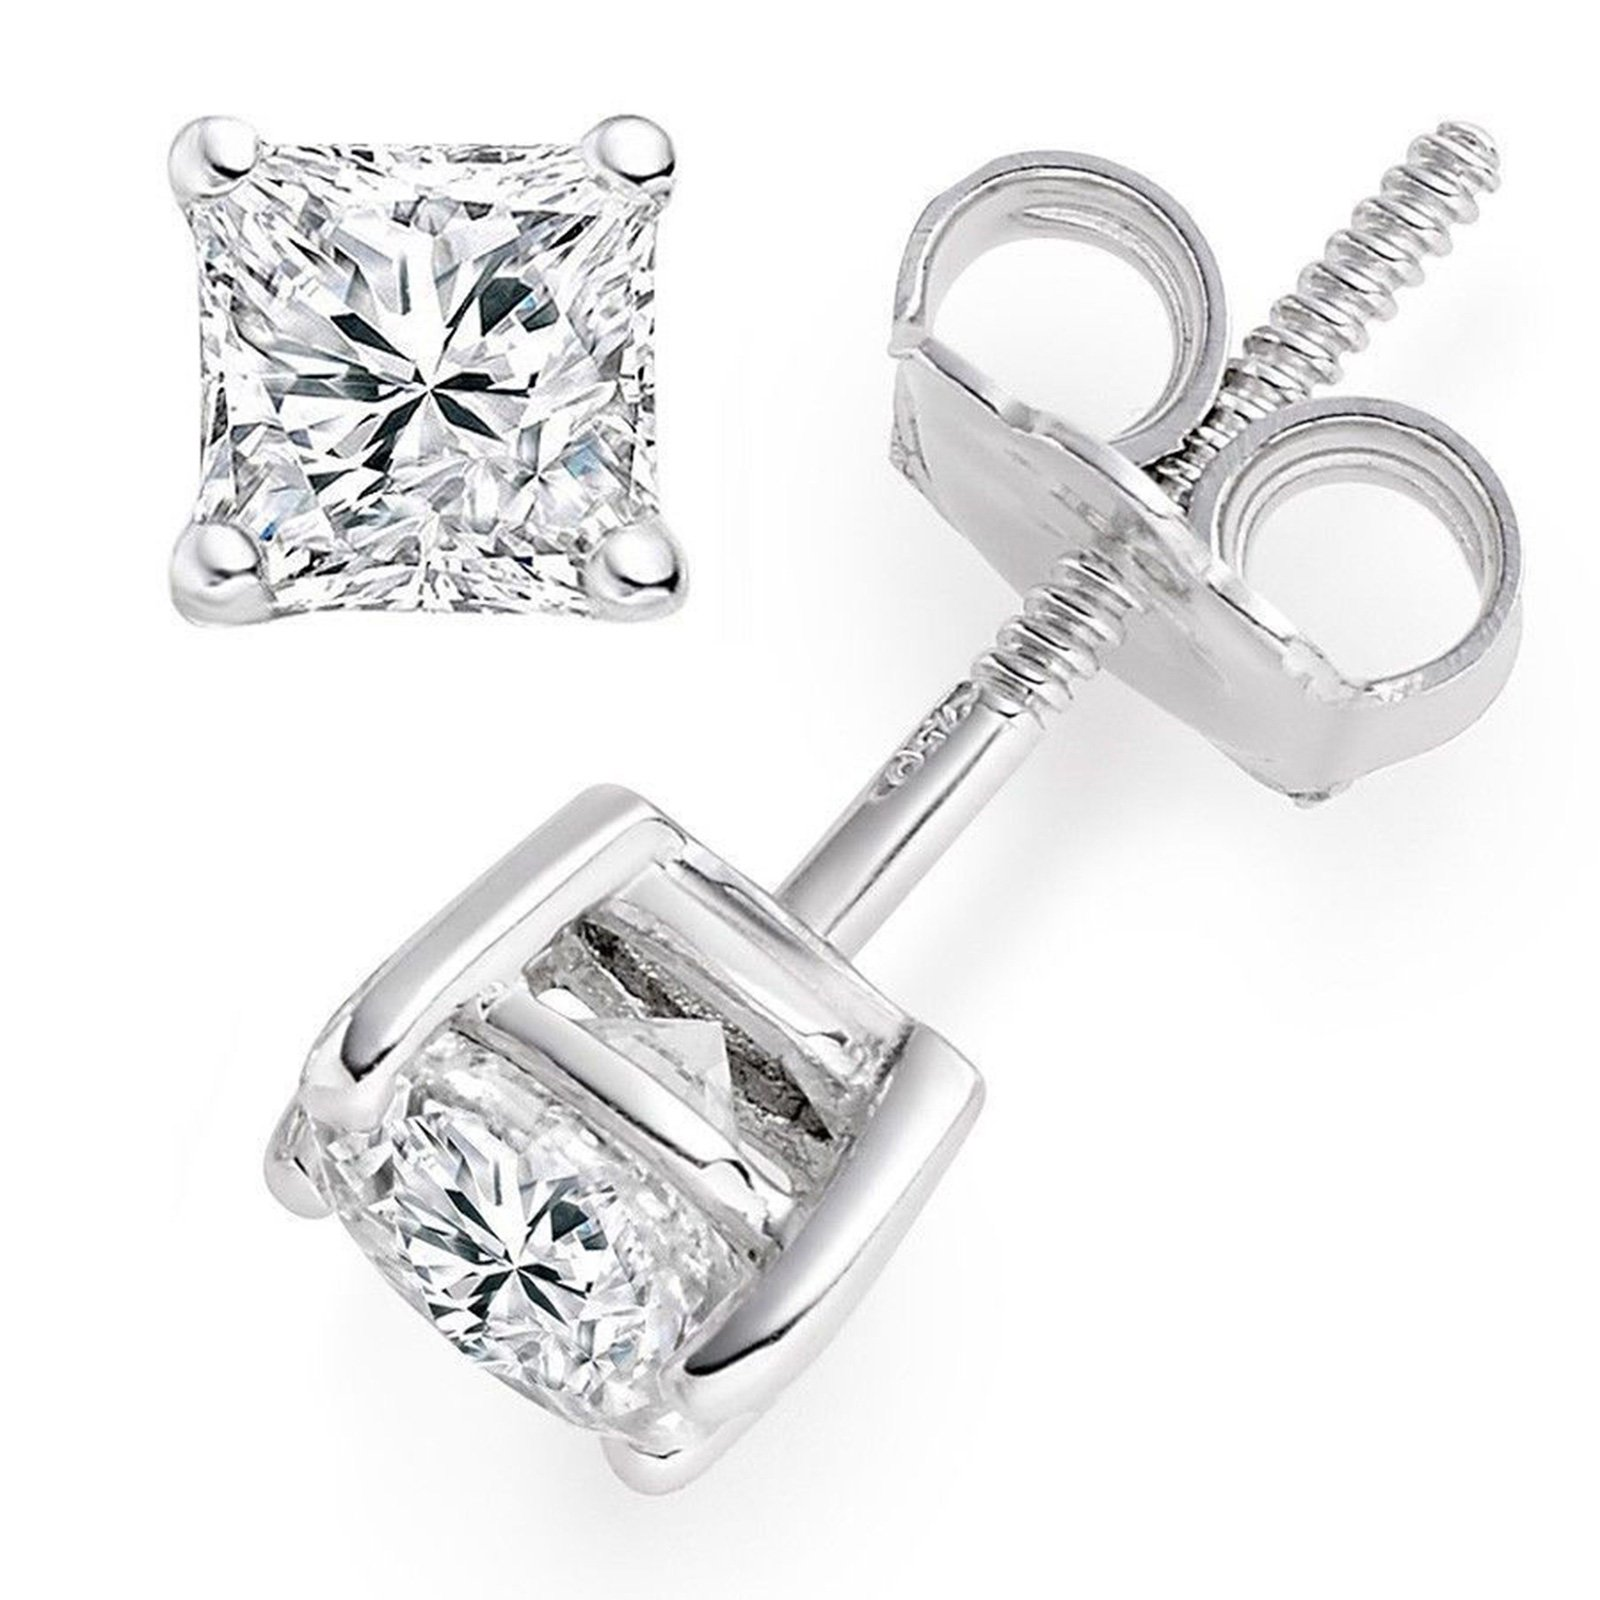 4.0 ctw Princess Brilliant Cut Simulated Diamond CZ Solitaire Stud Earrings in 14k White Gold Screw Back by Clara Pucci (Image #2)